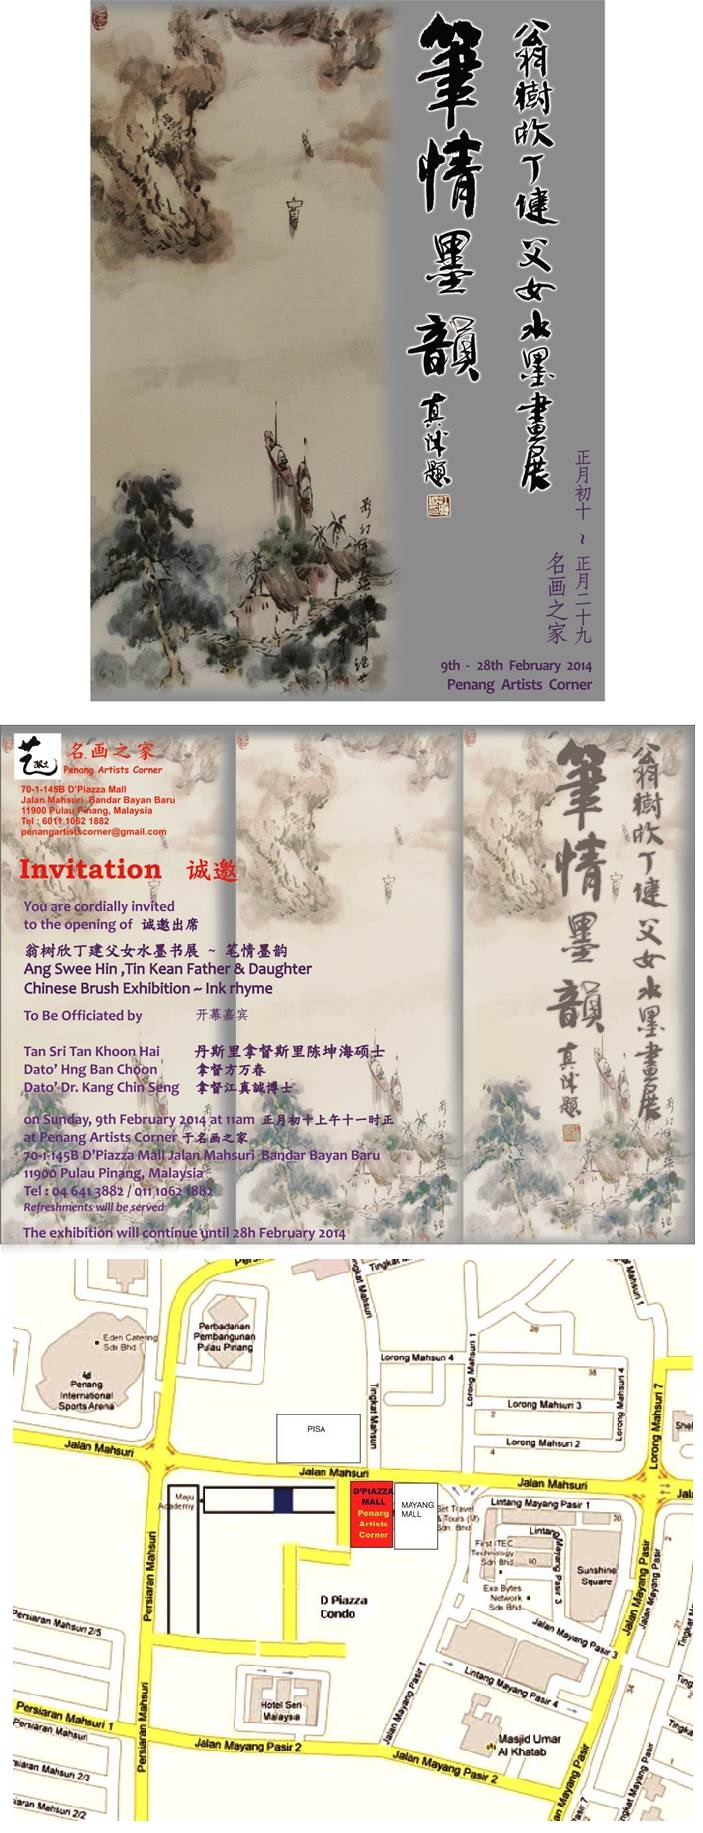 D Exhibition Penang : Ang swee hin tin kean father & daughter chinese brush exhibition